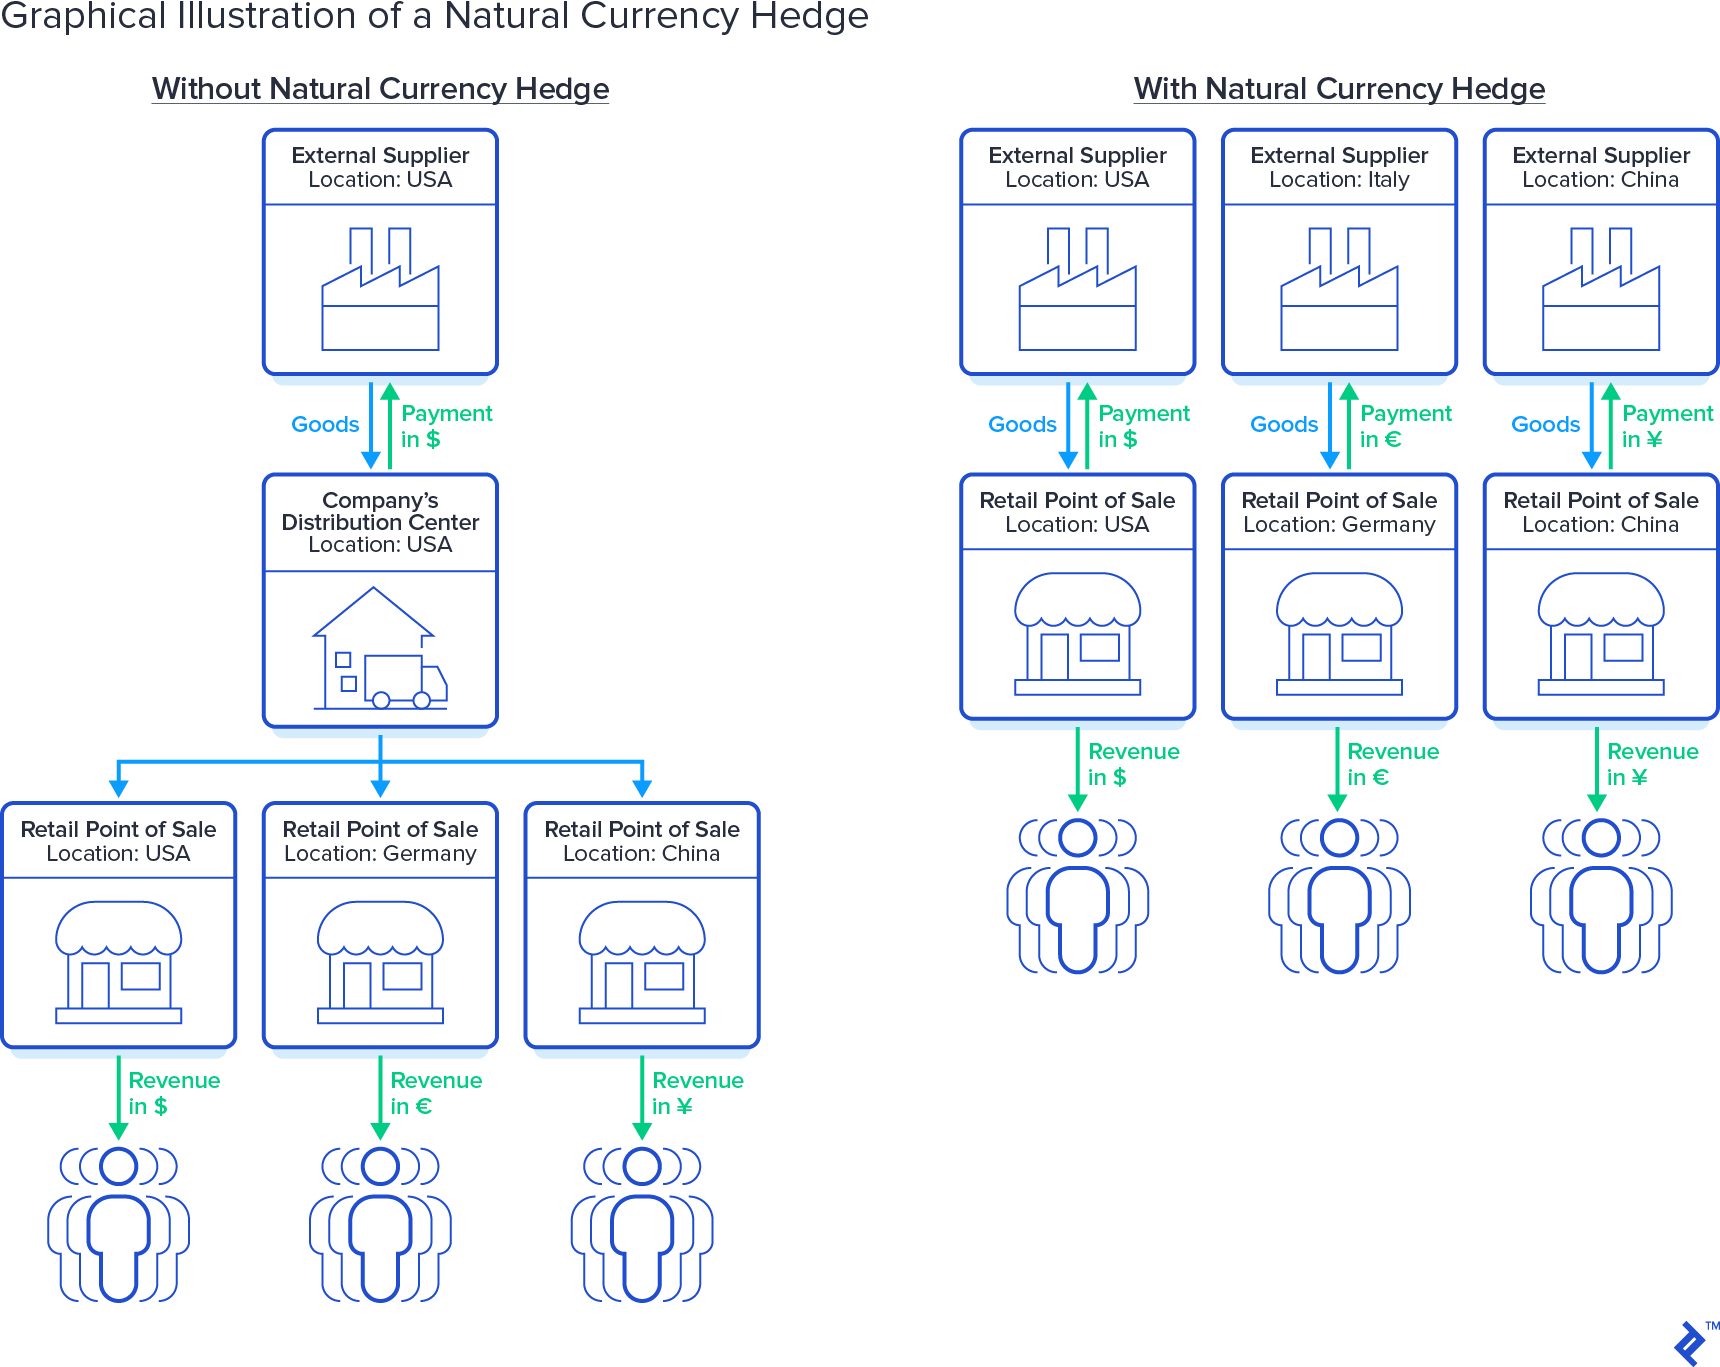 Graphical illustration of a natural currency hedge